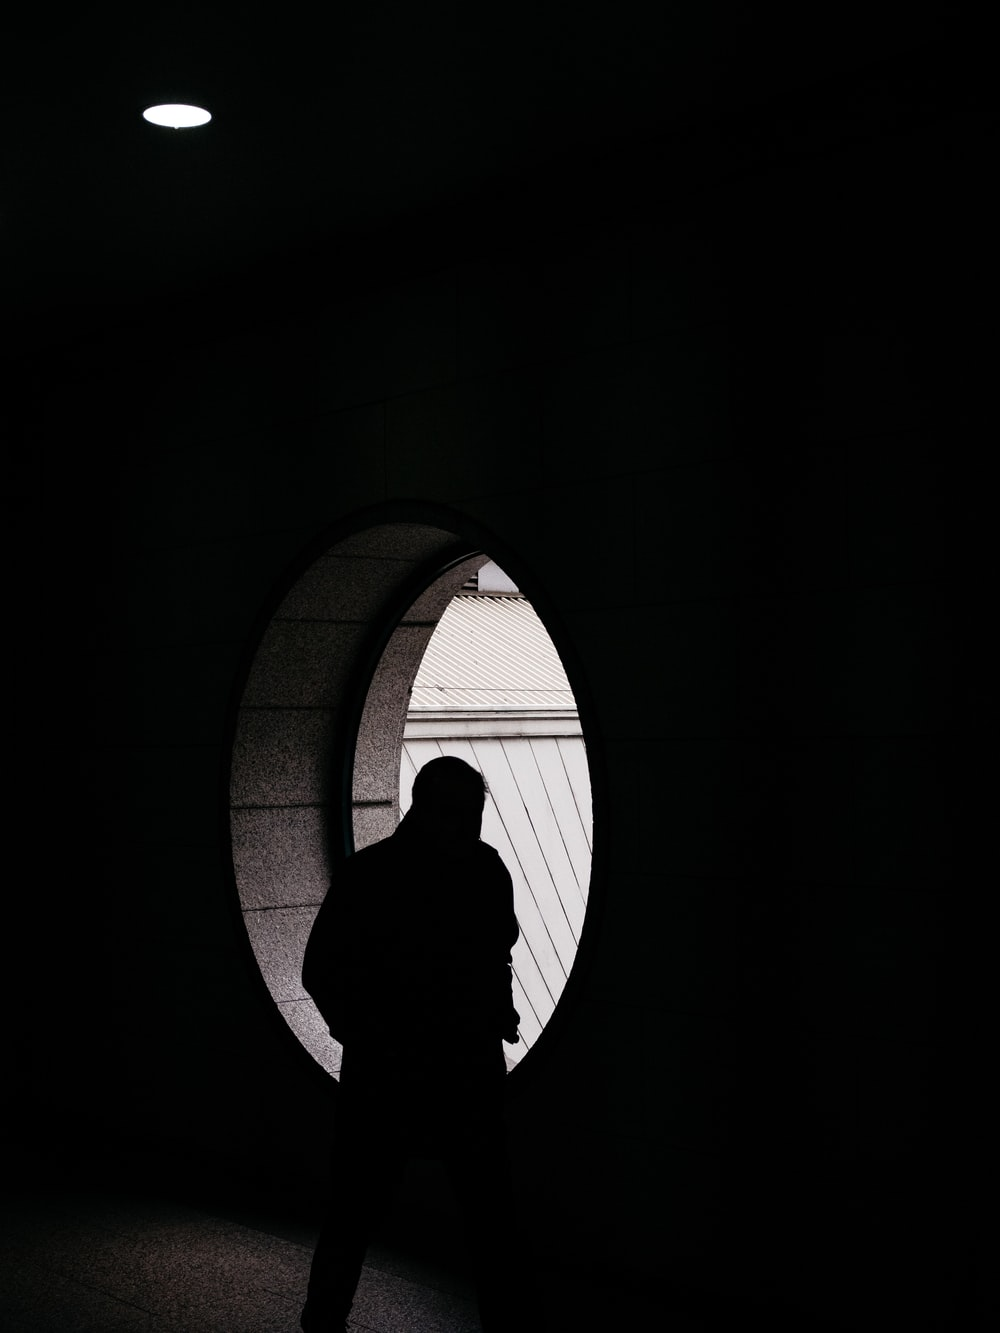 silhouette of person standing in front of window